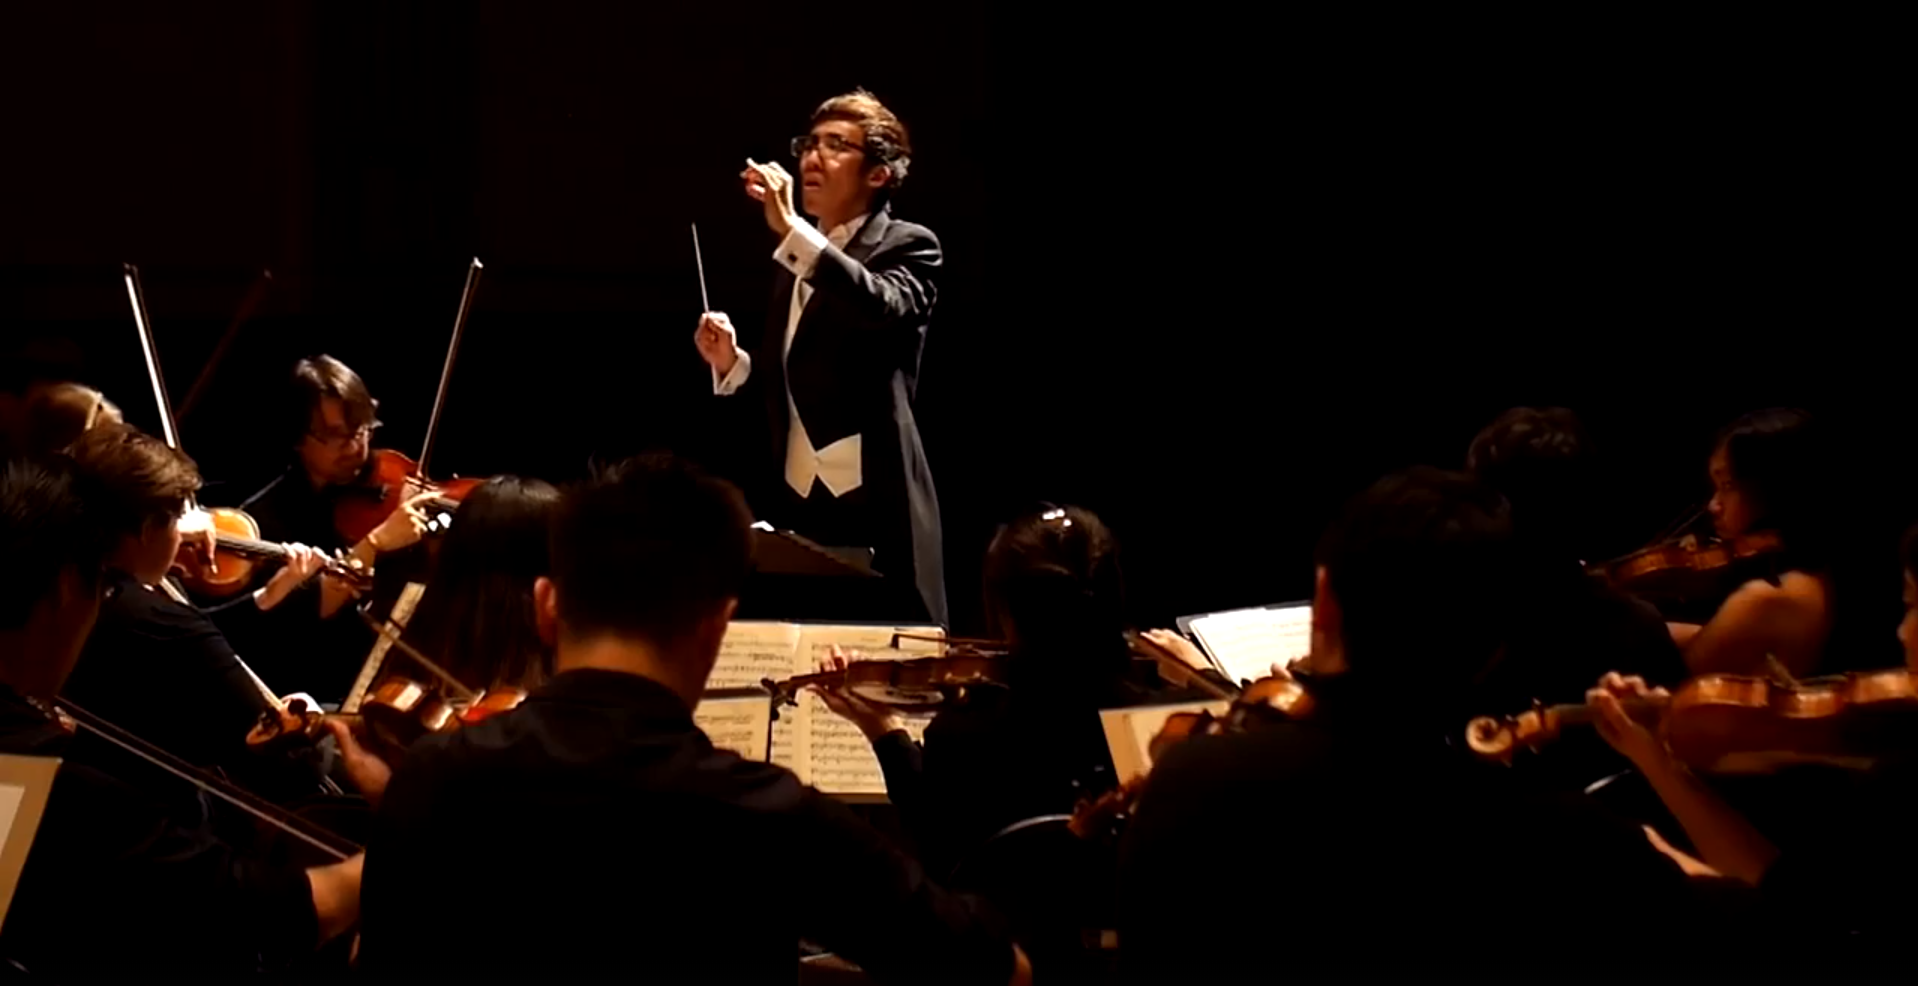 Joshua Chiu Conducting